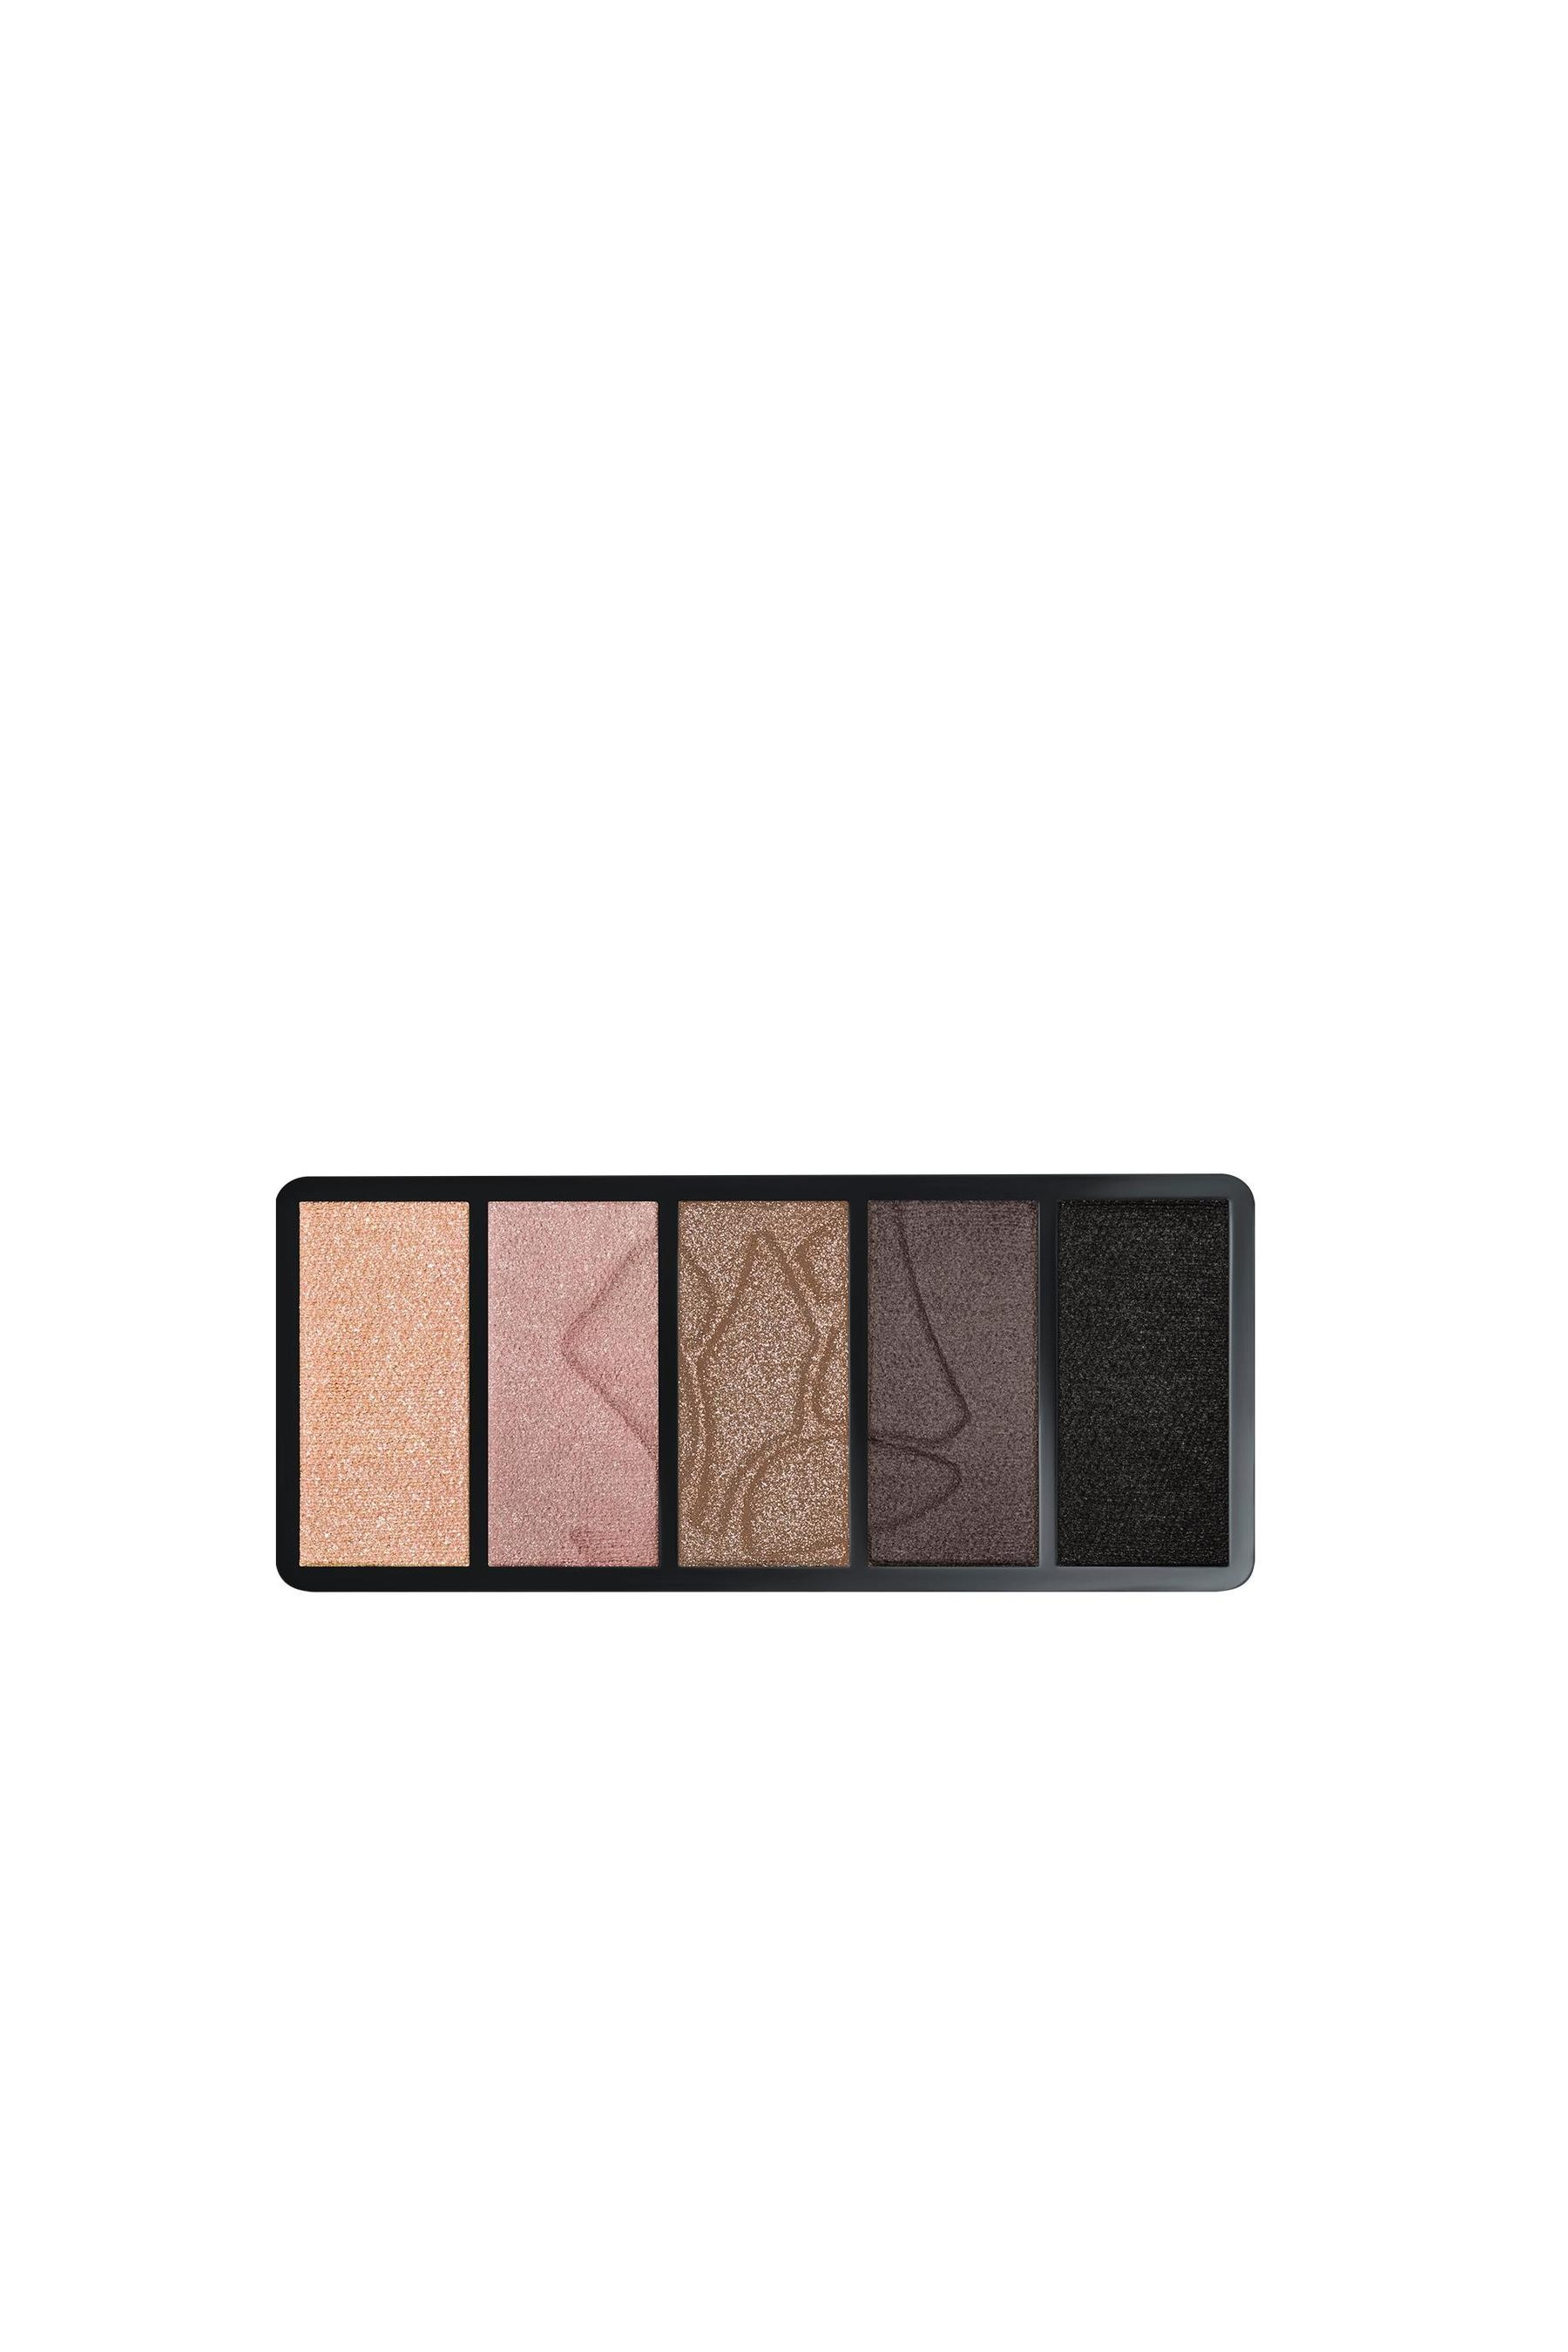 Buy NYX Professional Make Up Away We Glow Shadow Palette